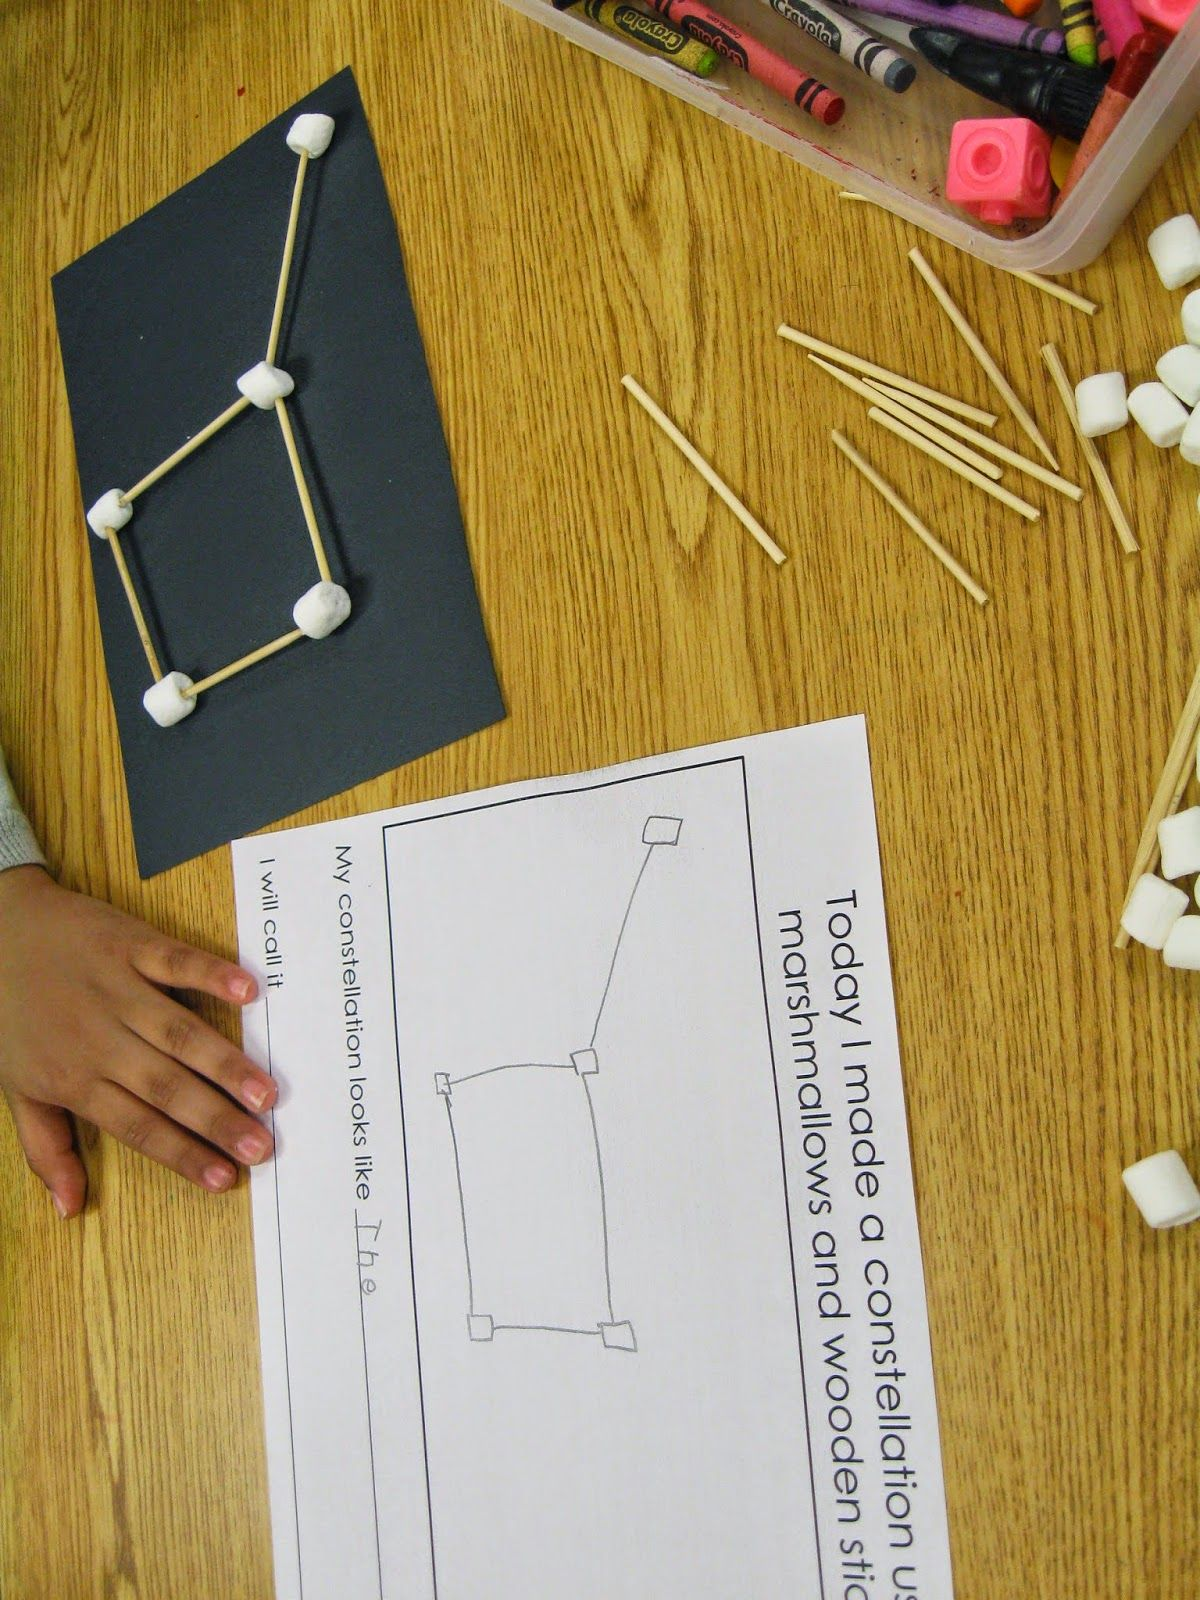 Create Constellations With Marshmallows